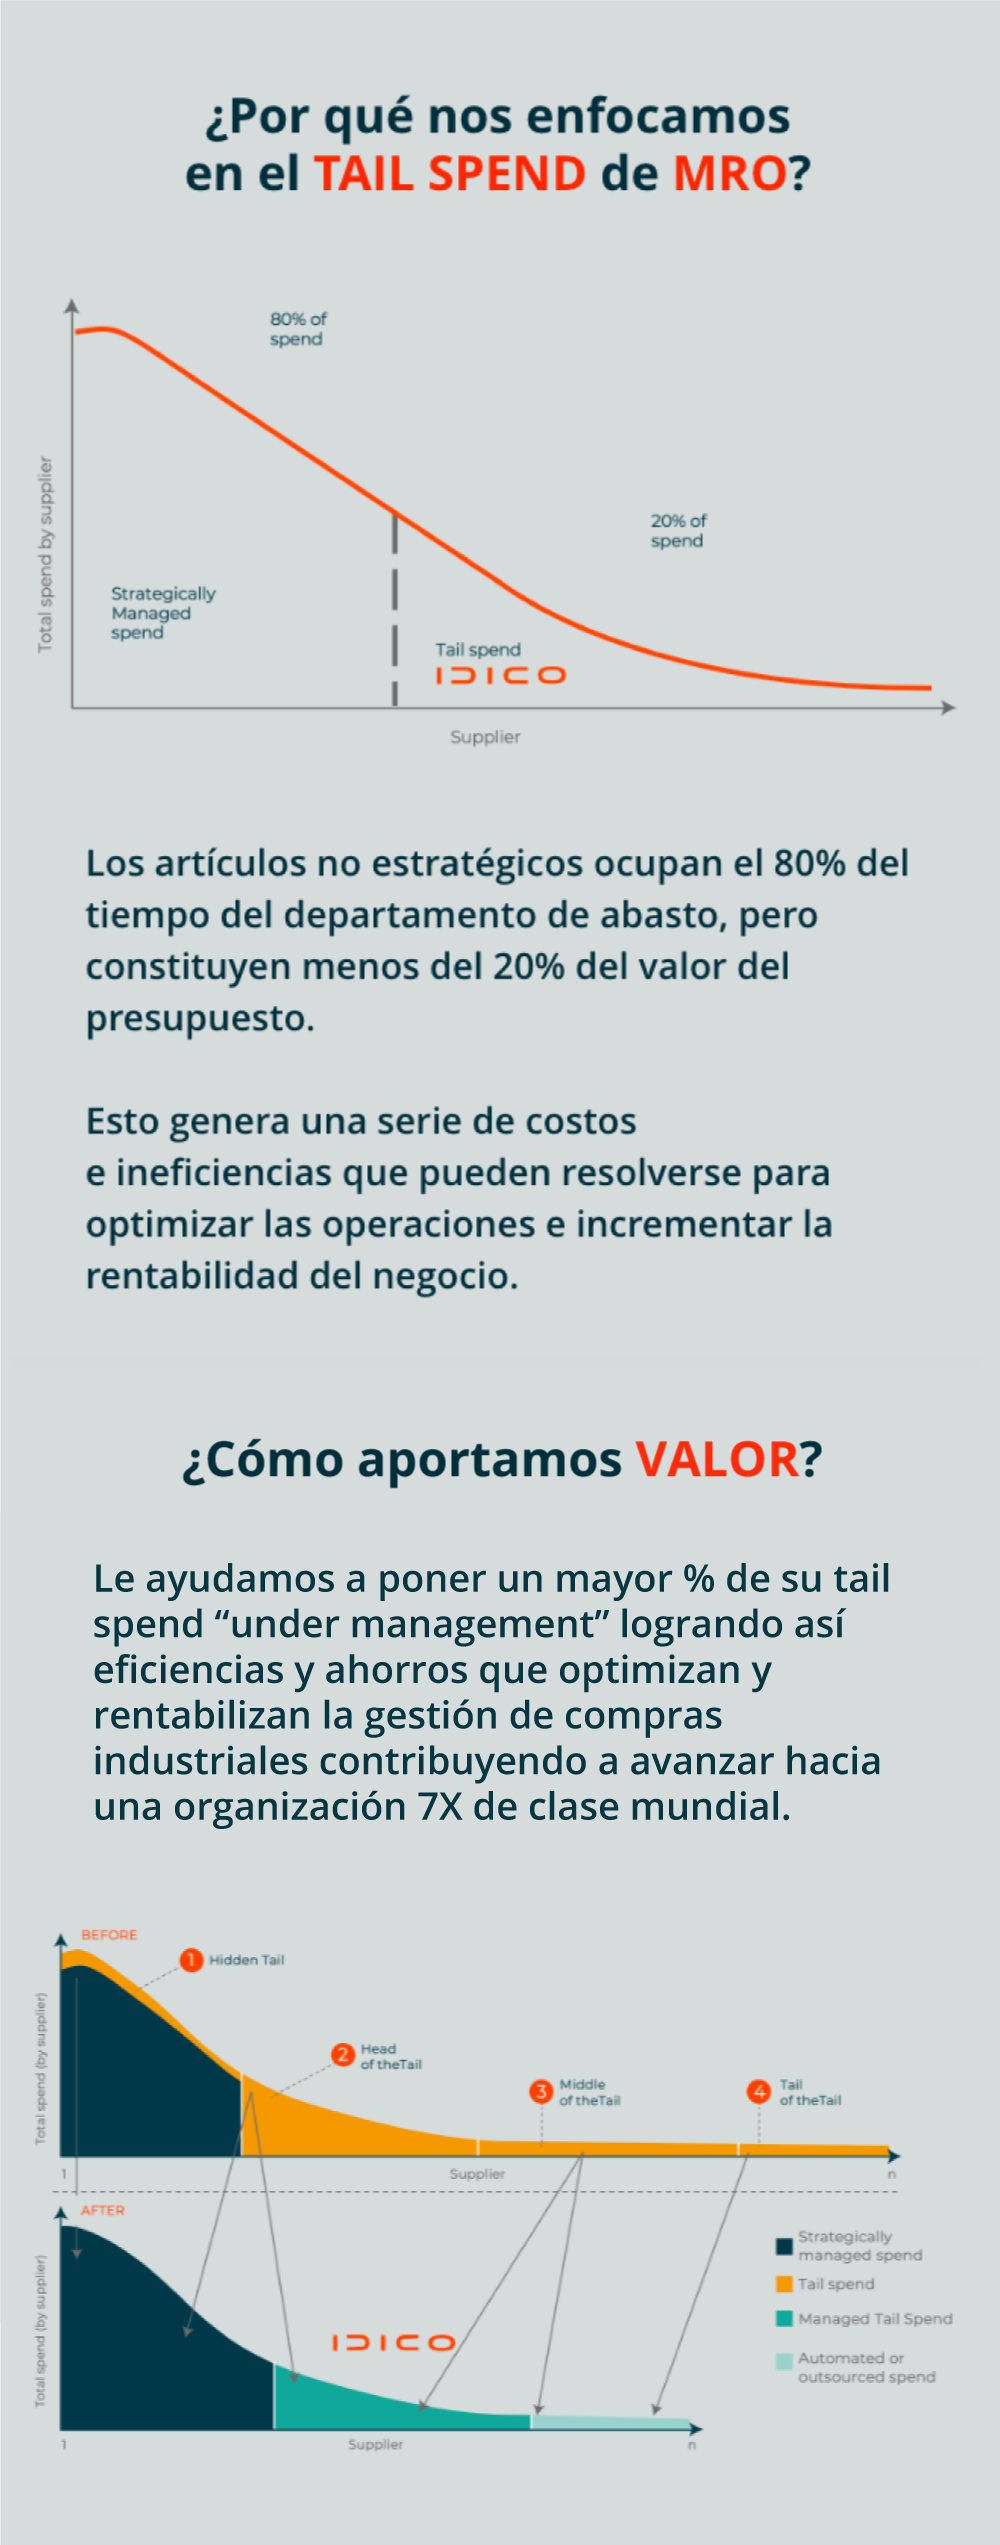 "¿Por qué nos enfocamos en el TAIL SPEND de MRO?  Total Spend by supplier  Strategically Managed Spend  80% of spend Tail Spend Idico 20% of spend  Supplier Fuente: Accenture   Los artículos no estratégicos ocupan el 80% del tiempo del departamento de abasto, pero constituyen menos del 20% del valor del presupuesto. Esto genera una serie de costos e ineficiencias que pueden resolverse para optimizar las operaciones e incrementar la rentabilidad del negocio     ¿Cómo aportamos VALOR?  Le ayudamos a poner un mayor % de su tail spend ""under management"" logrando así eficiencias y ahorros que optimizan y rentabilizan la gestión de compras industriales contribuyendo a avanzar hacia una organización 7X de clase mundial.  Total spend (by supplier) BEFORE 1Hidden Tail 2 Head of the Tail 3 Middle of the Tail 4 Tail of the Tail Supplier 1  AFTER Total spend (by supplier) IDICO Strategically Managed Spend Tail Spend Managed Tail Spend Automated or outsoured spend  Supplier Fuente: Accenture"